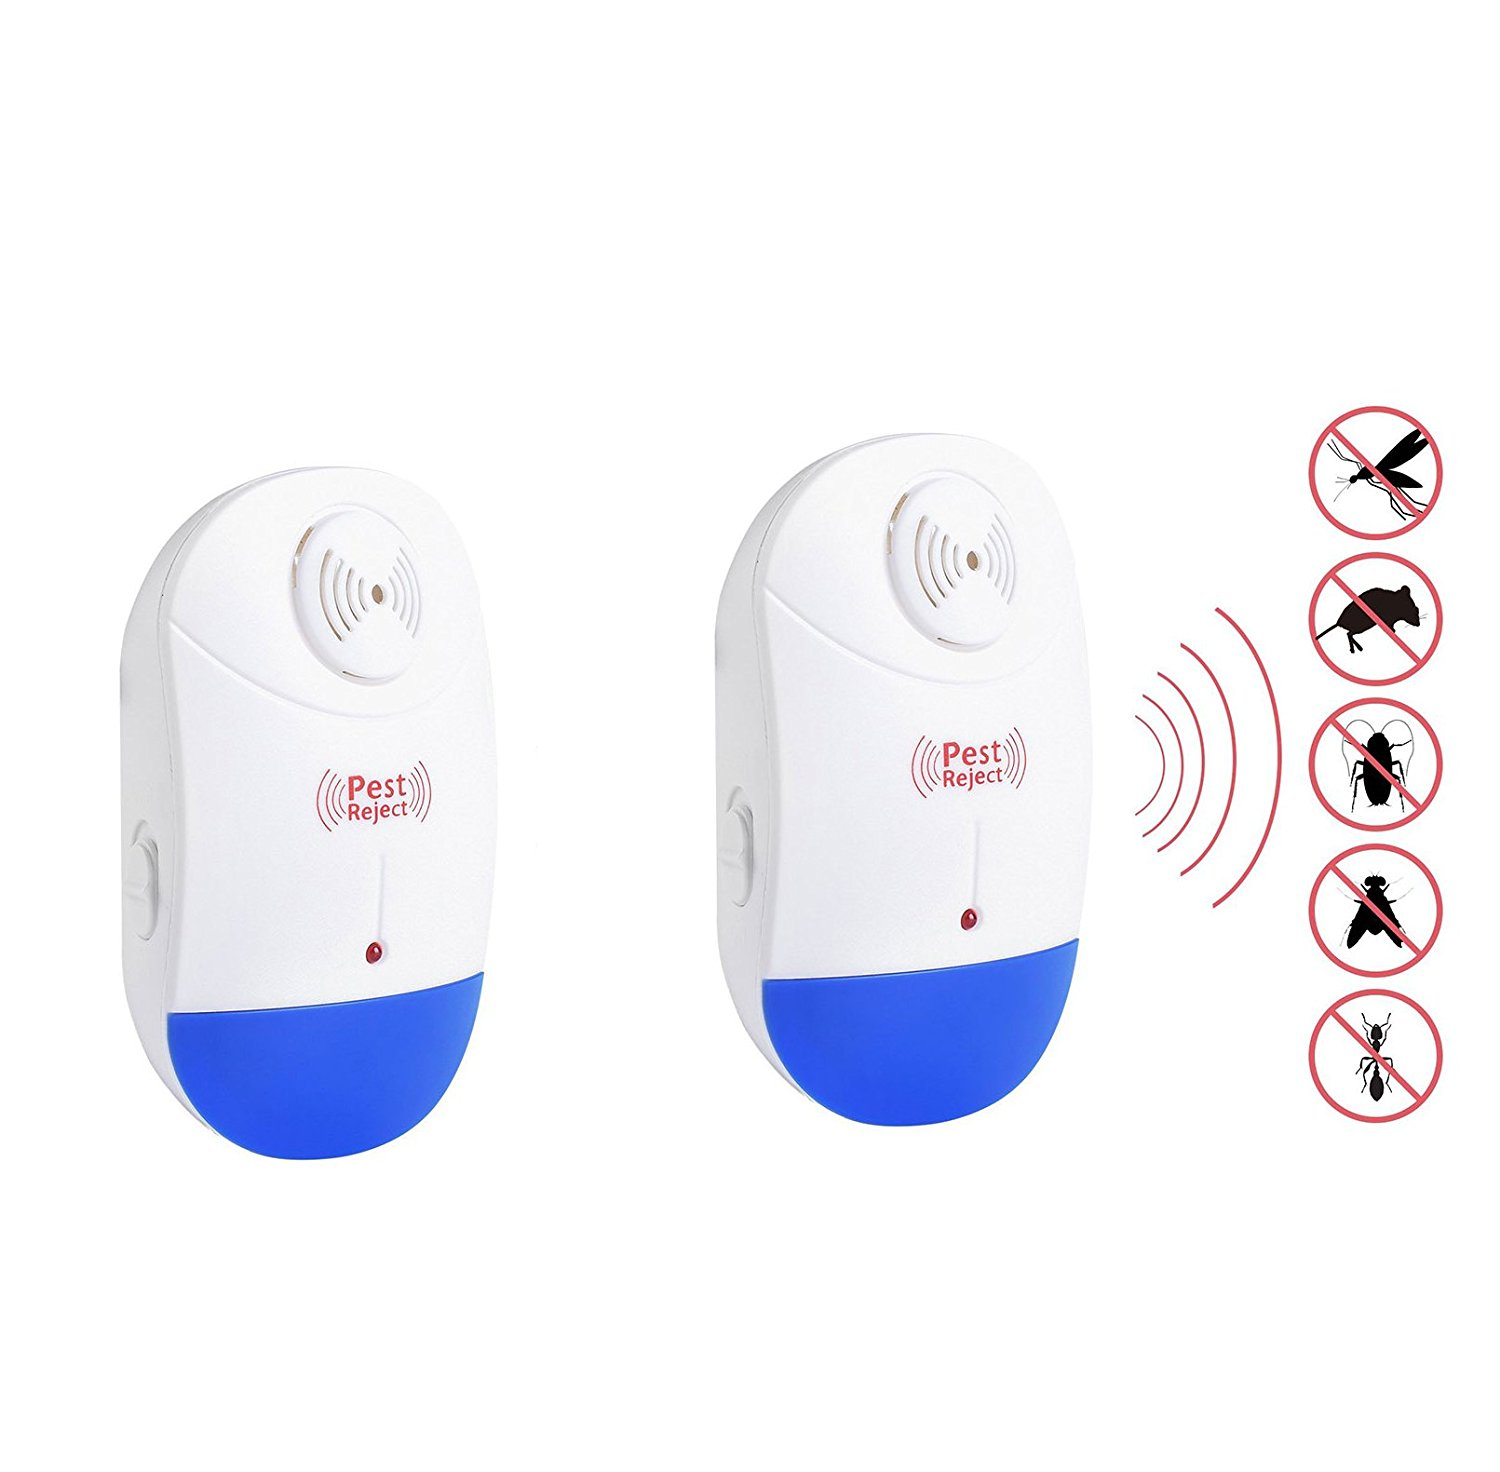 Dilwe 2 PCS Ultrasonic Pest Repeller with Night Light,Electronic Plug-In & Repel... by